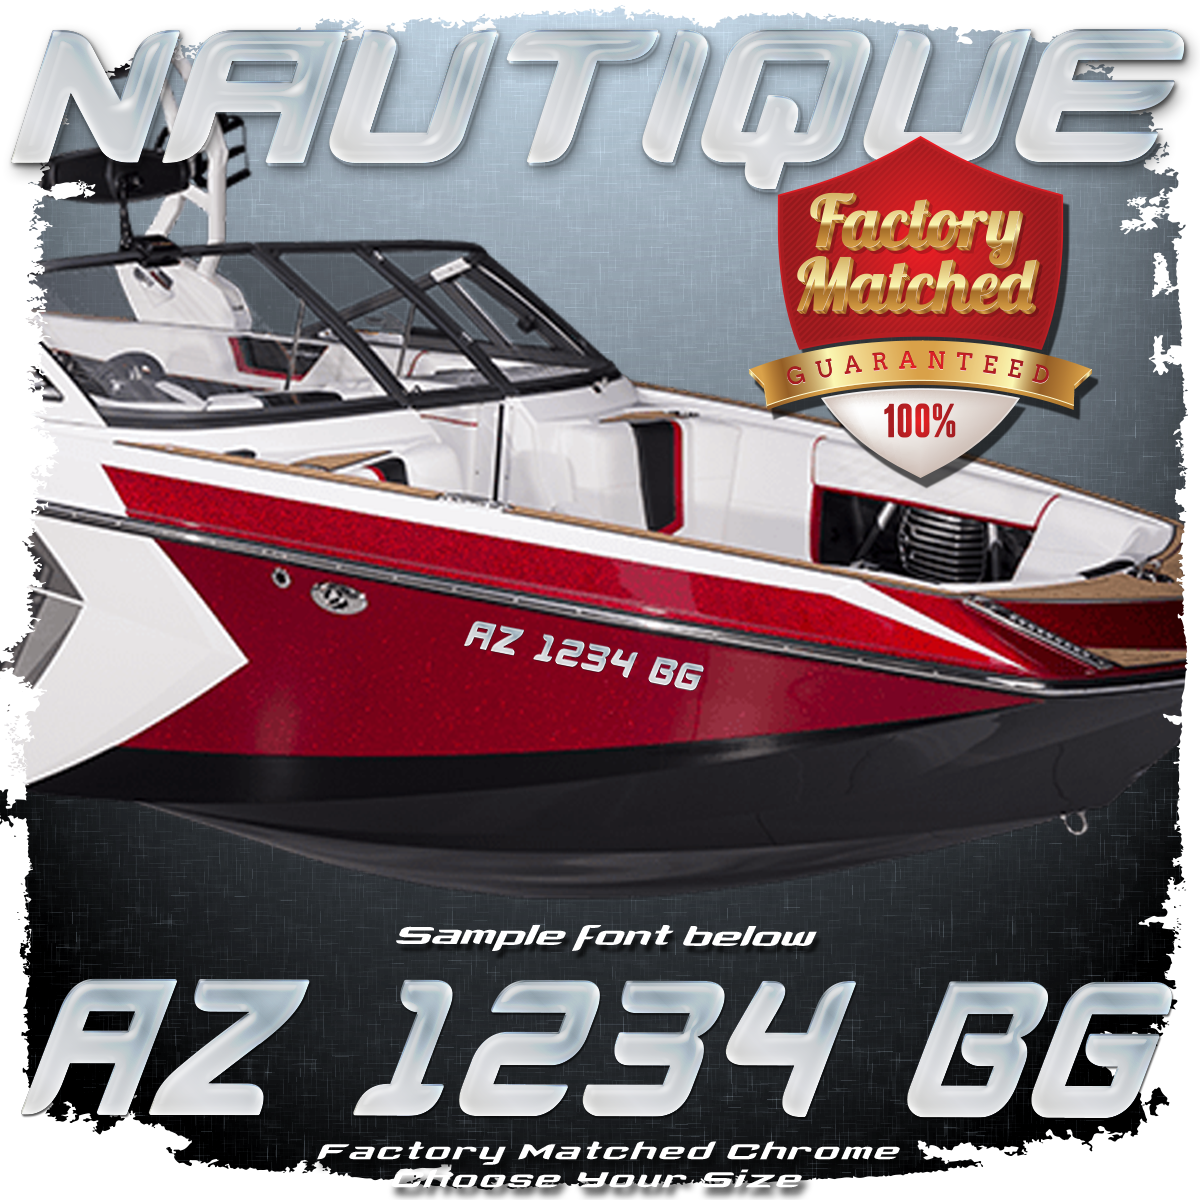 Nautique Registration (2 included), Factory Matched Chrome